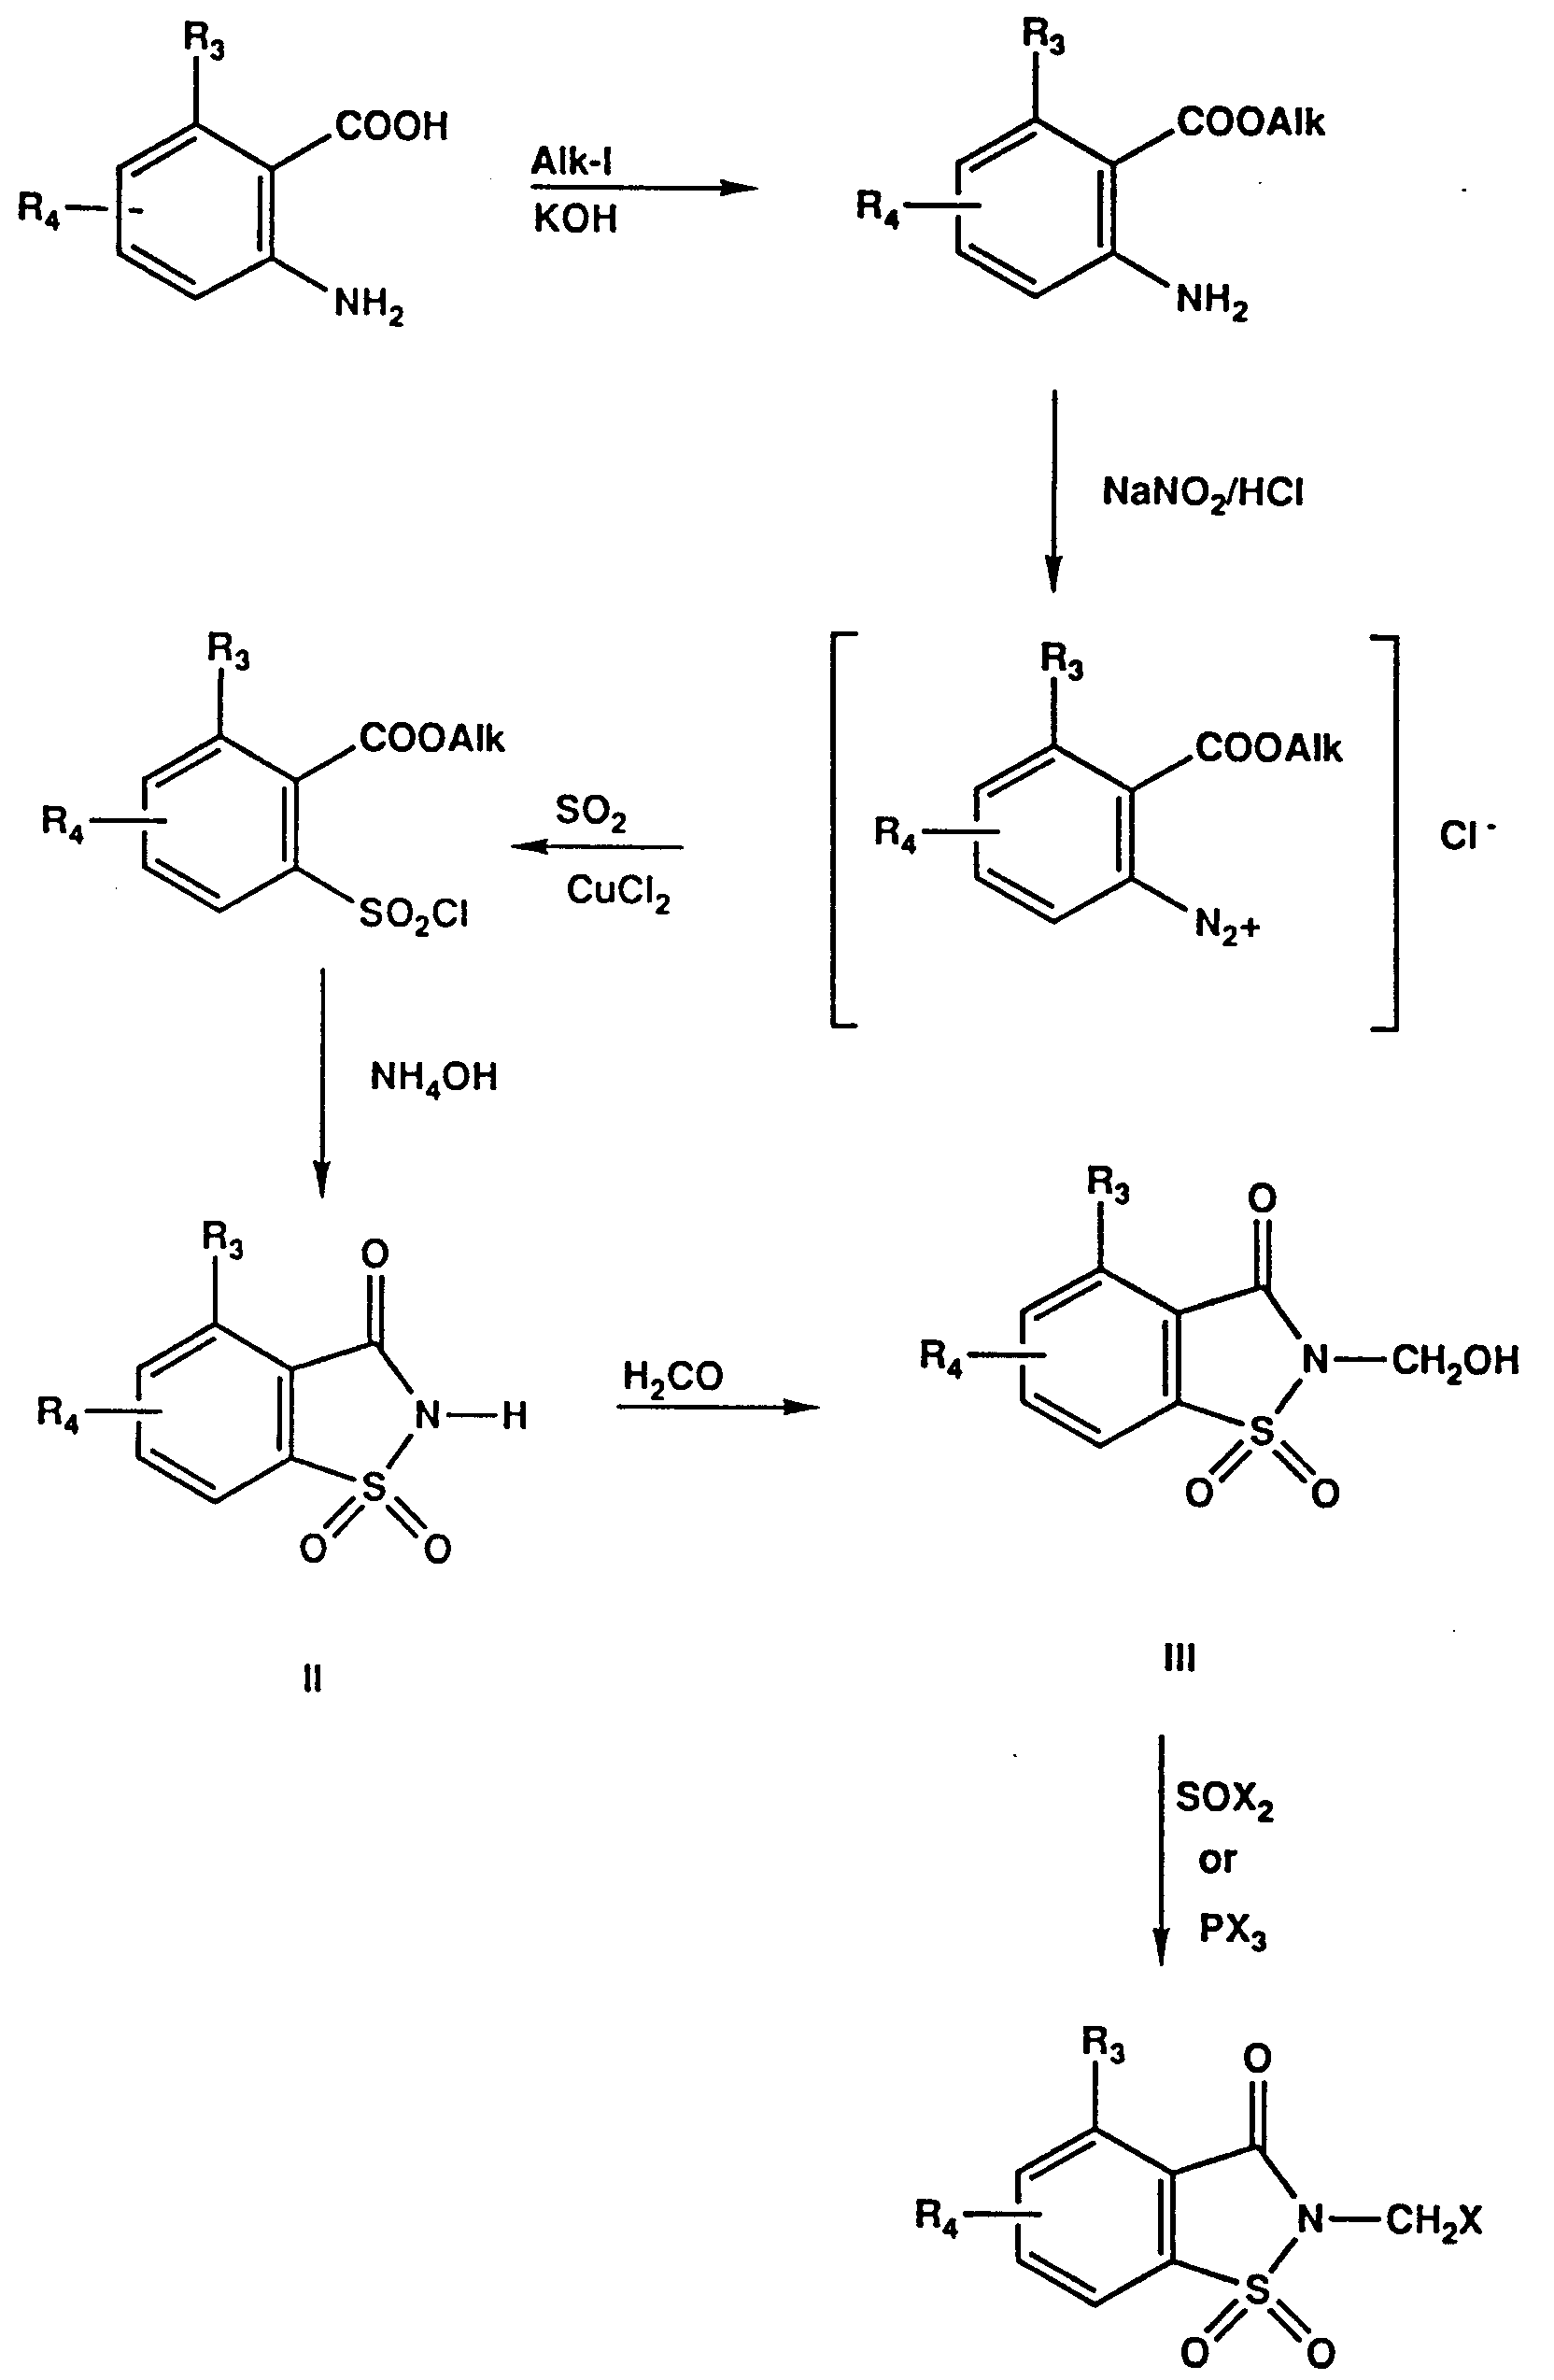 Buy custom Reaction Iodoethane With Saccharin, An Ambident Nucleophile